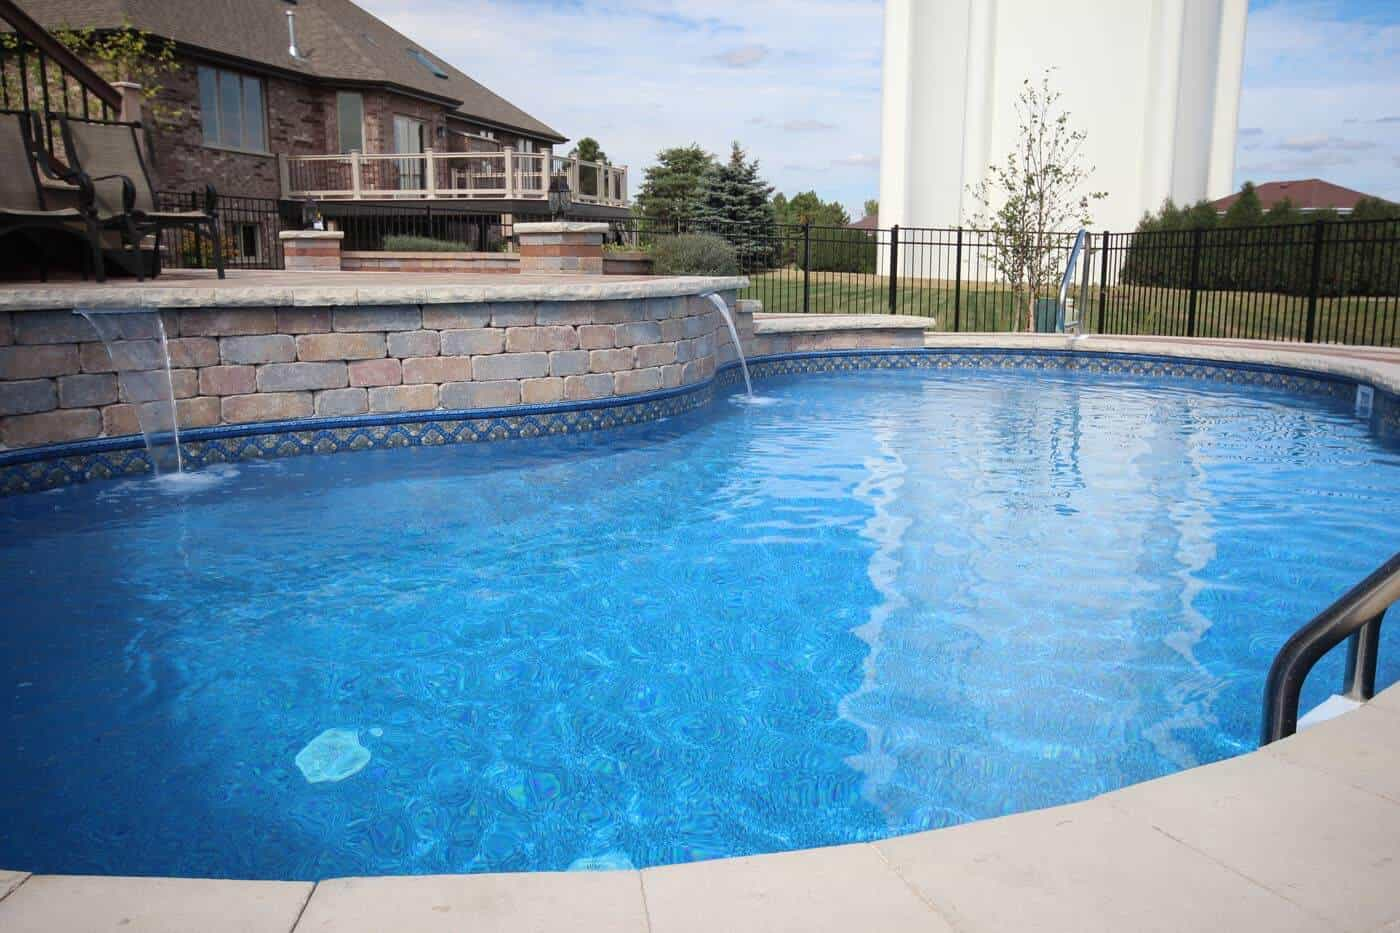 5 tips for an easy pool opening aqua pools online - Pool shock how long before swimming ...